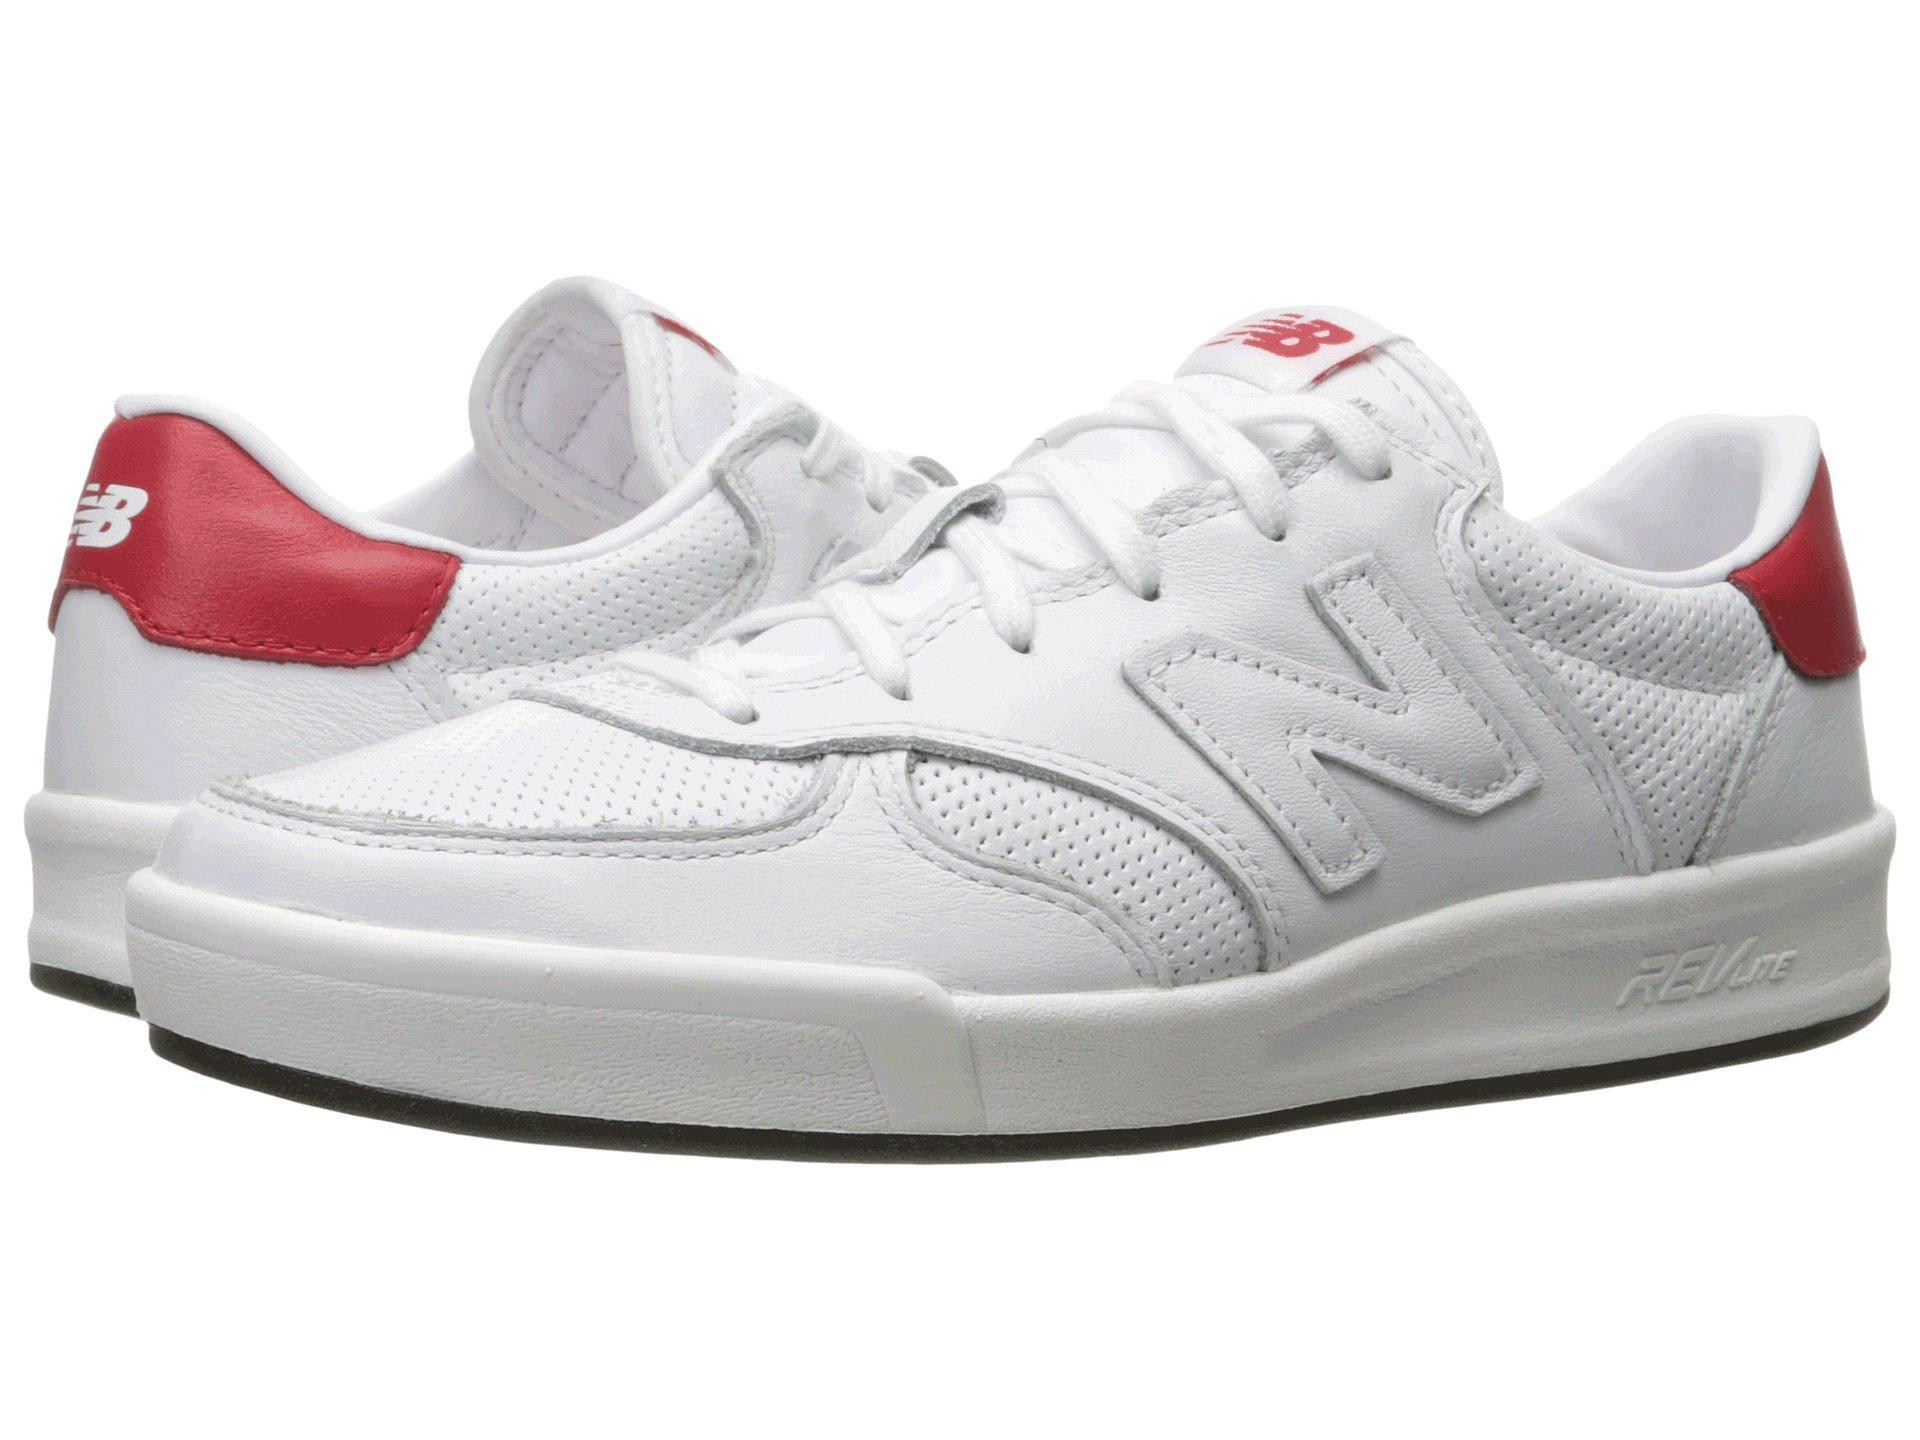 NEW Balance Crt300v1 Men's Low Top Scarpe Da Ginnastica